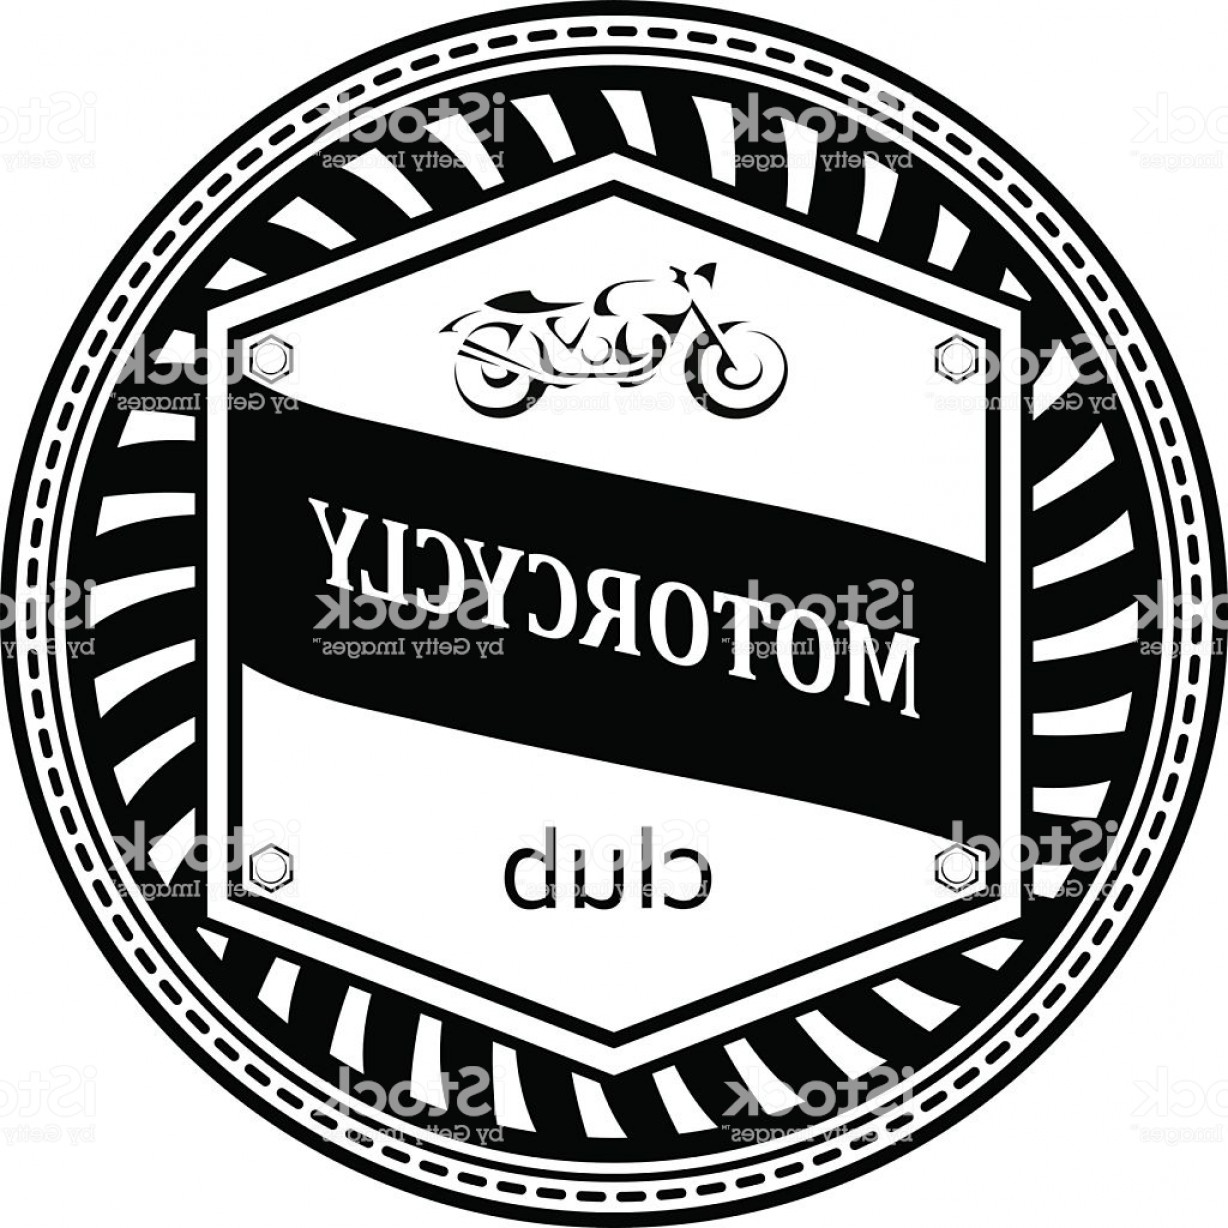 Motorcycle Club Vector: Logo With A Motorcycle Badge Design Transport Motorcycle Club Gm